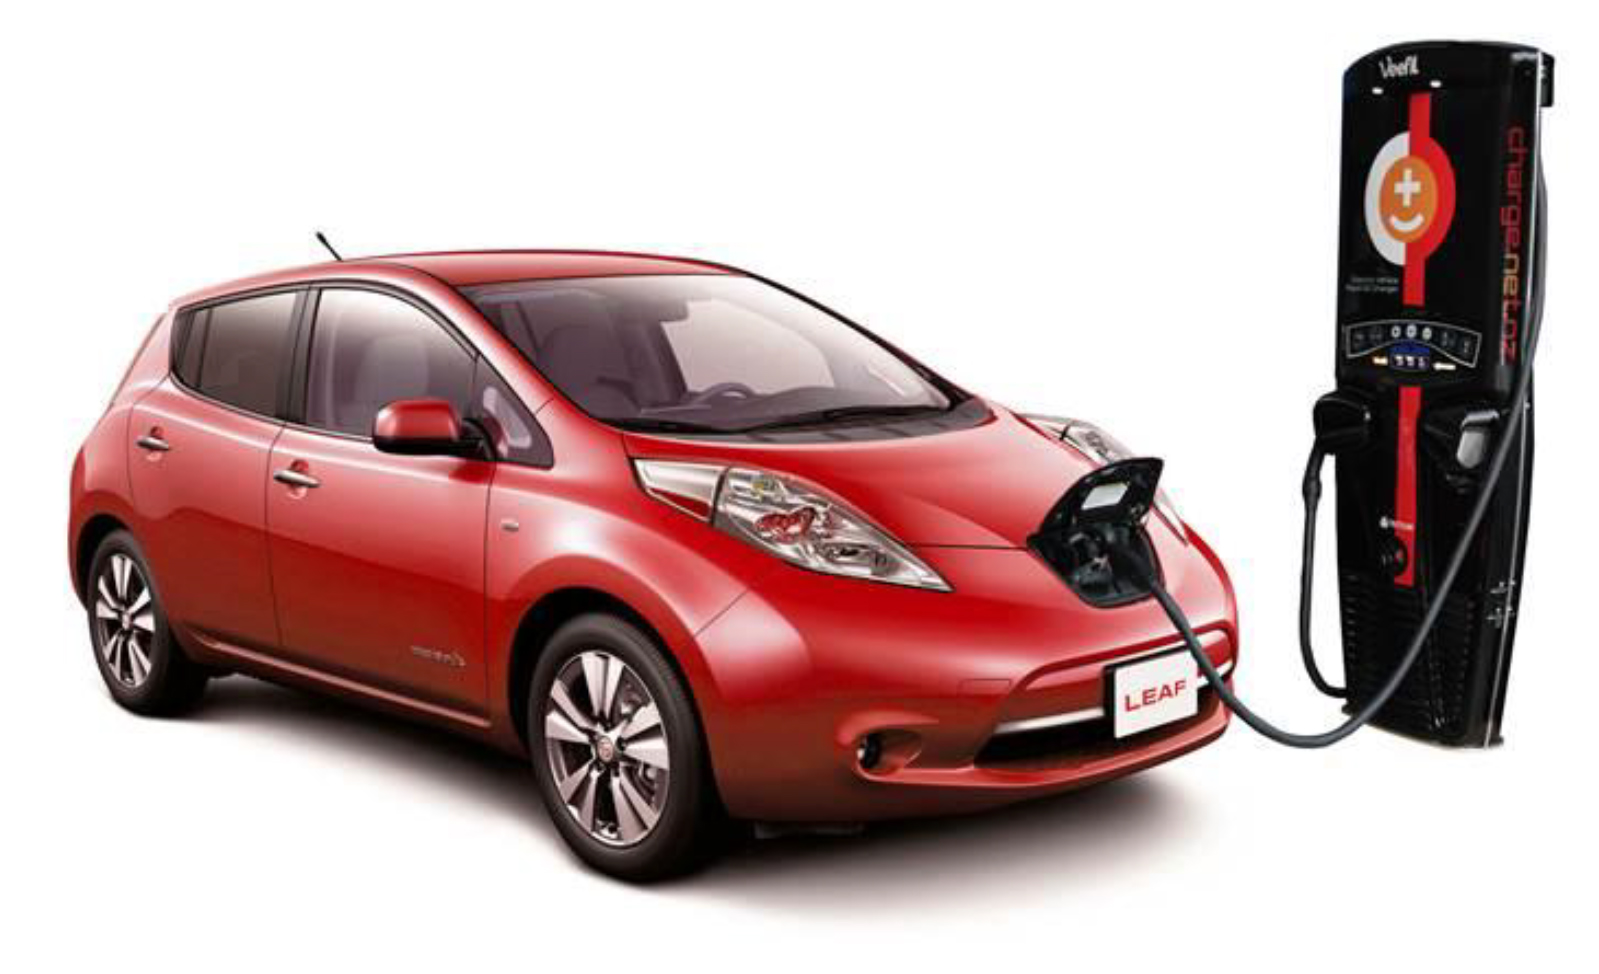 Nz Electric Car Guide Leading The Charge Plan B Electrical Christchurch Adding 100km Takes 3 Minutes